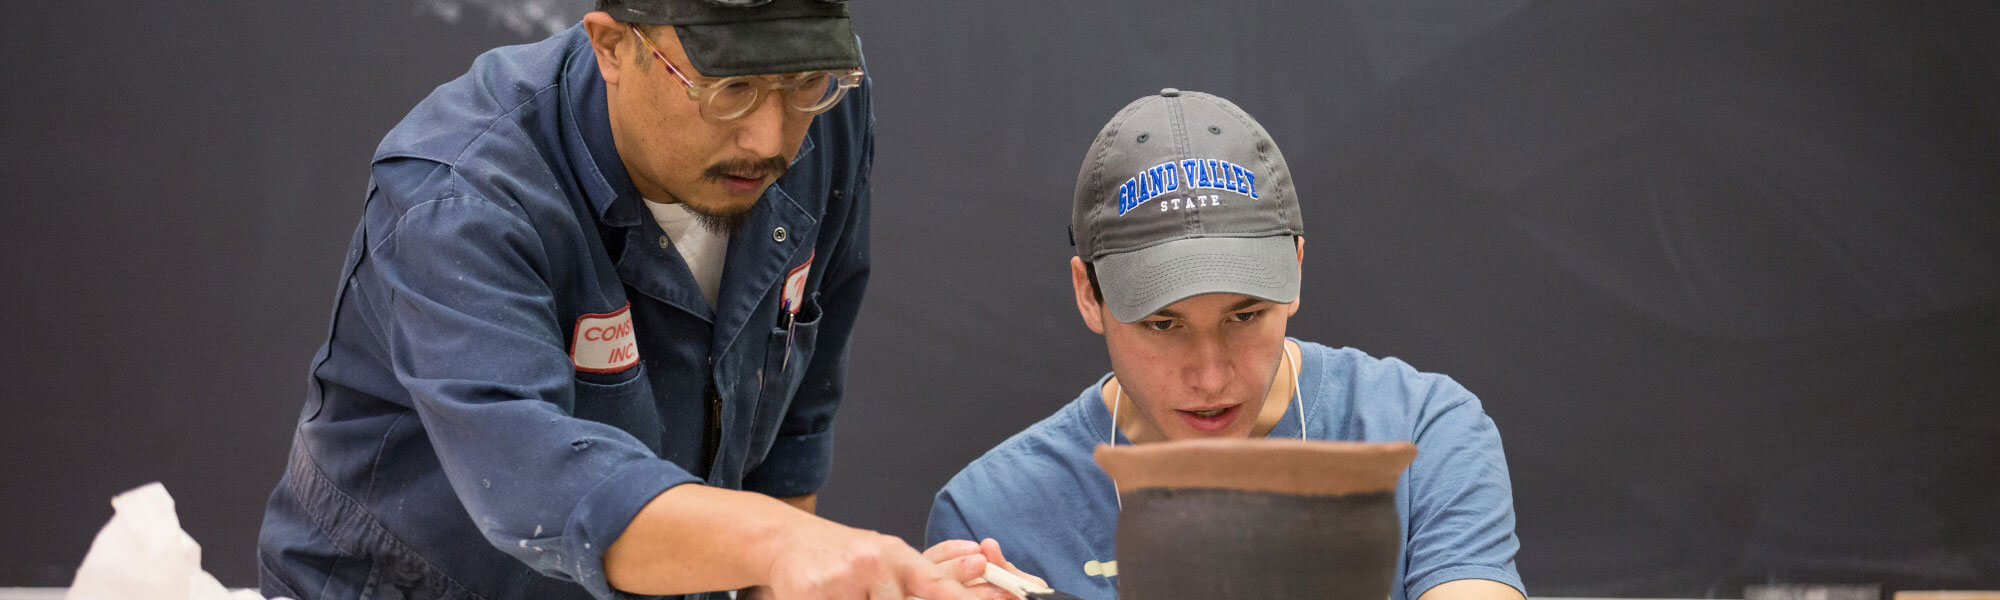 Photo of GVSU studio art student working with his professor in a sculpting class.